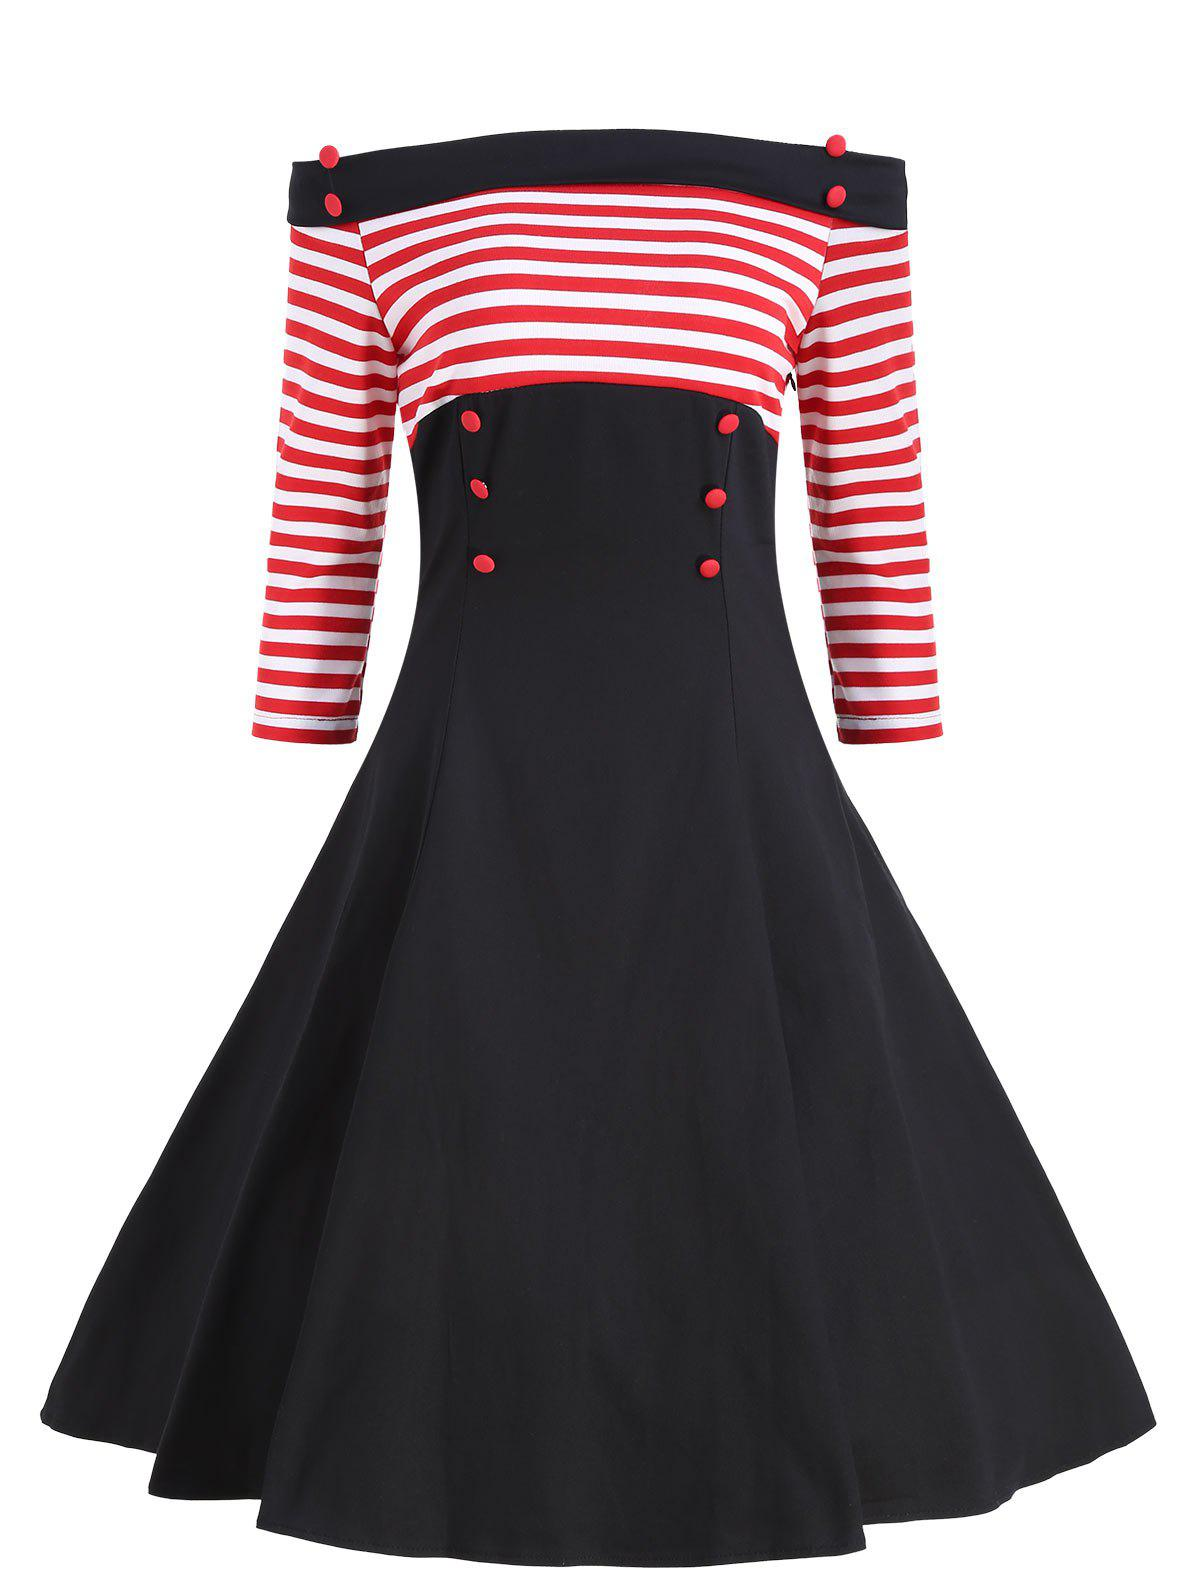 Buttons Striped Off The Shoulder Vintage Dress - RED S